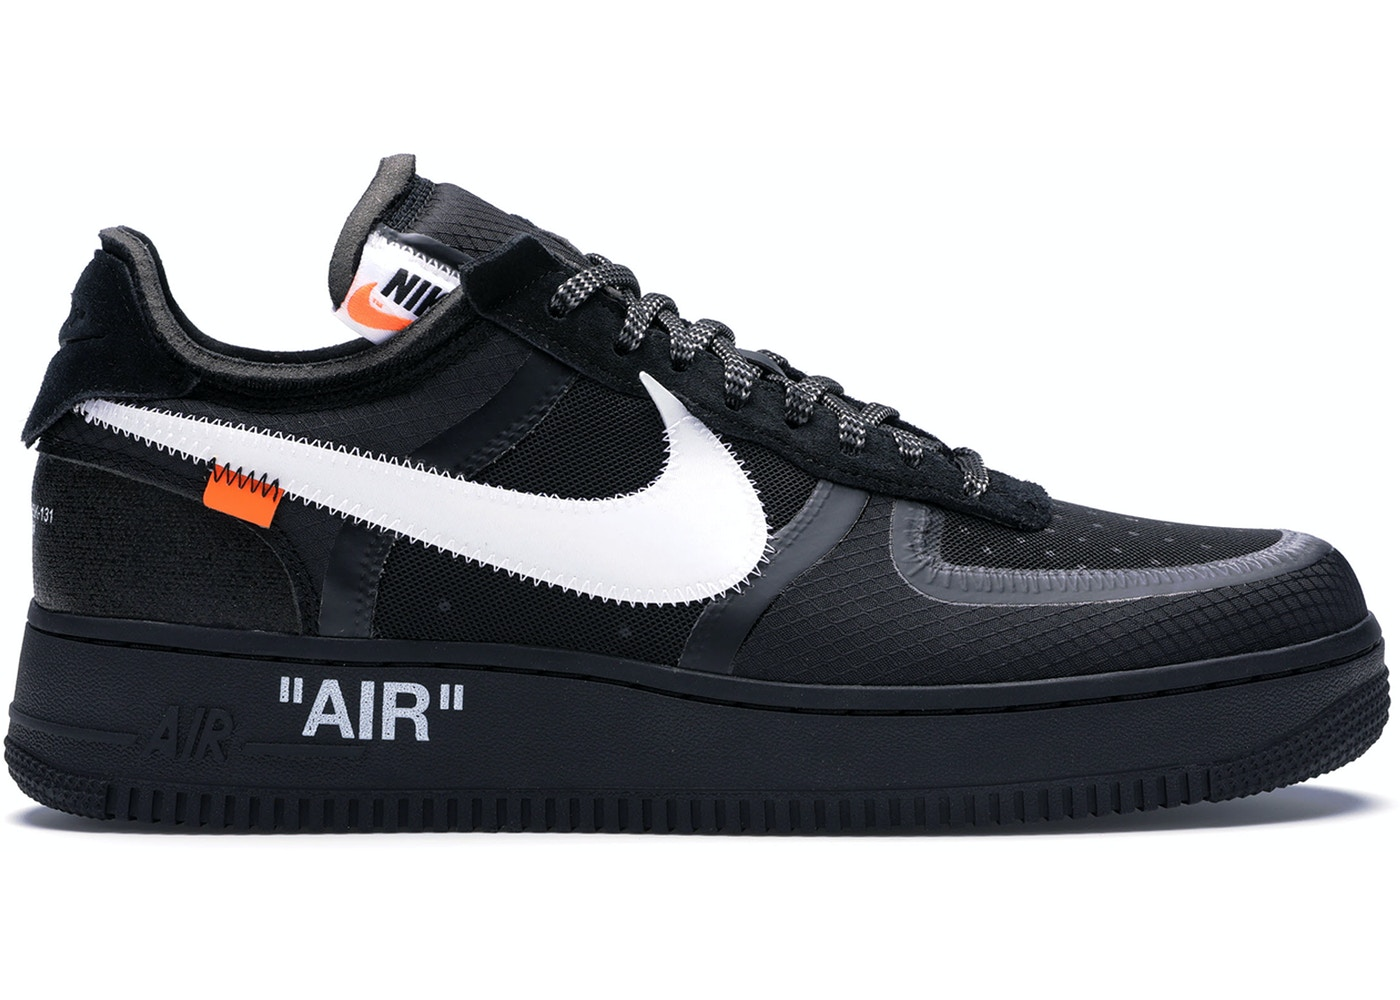 Nike Air Force 1 Shoes Nike Air Force 1 Low Off-White Black White - AO4606-001